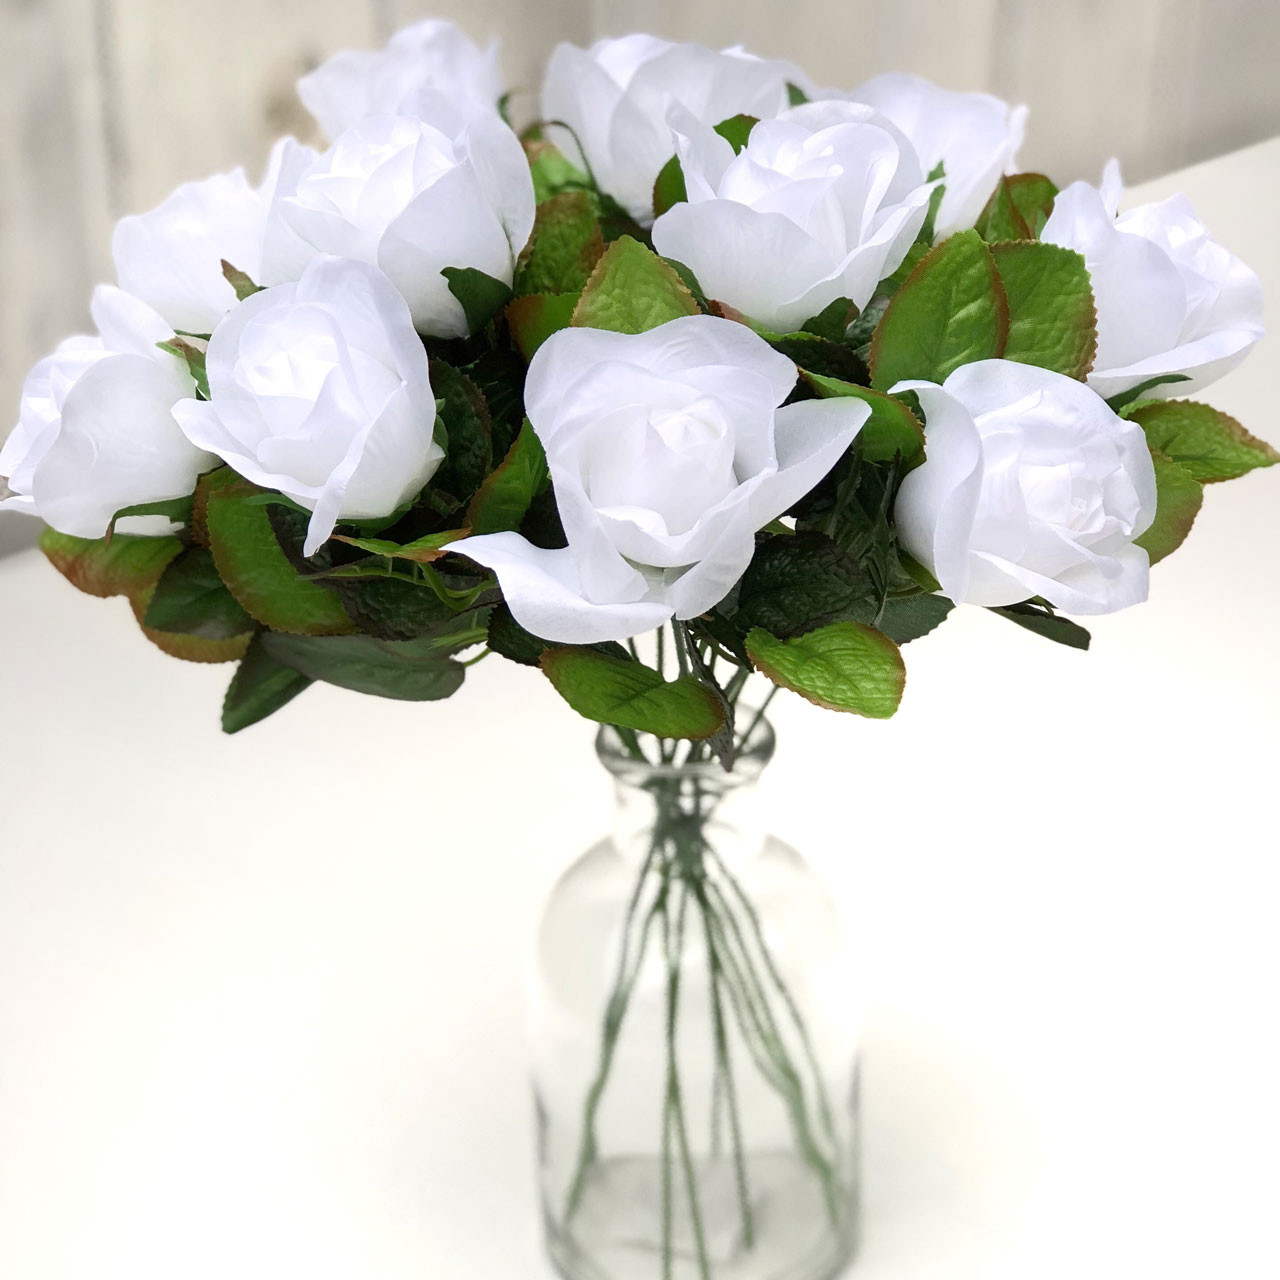 White Roses Artificial Flowers Fake Roses Silk Roses Faux Flowers Flowers In Bulk 12 White Stems Thebridesbouquet Com